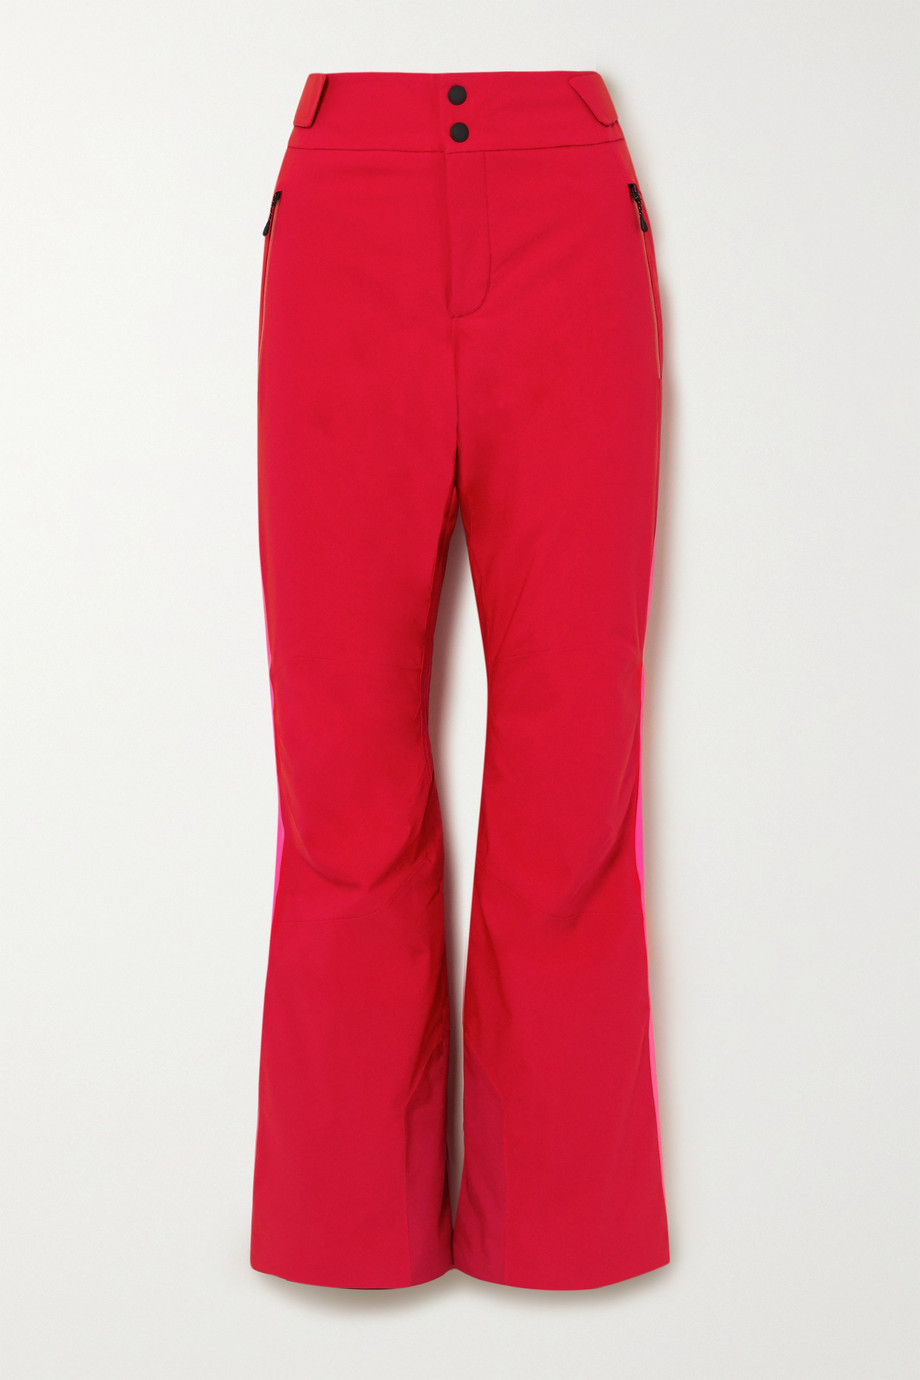 BOGNER FIRE+ICE Maila striped ski pants